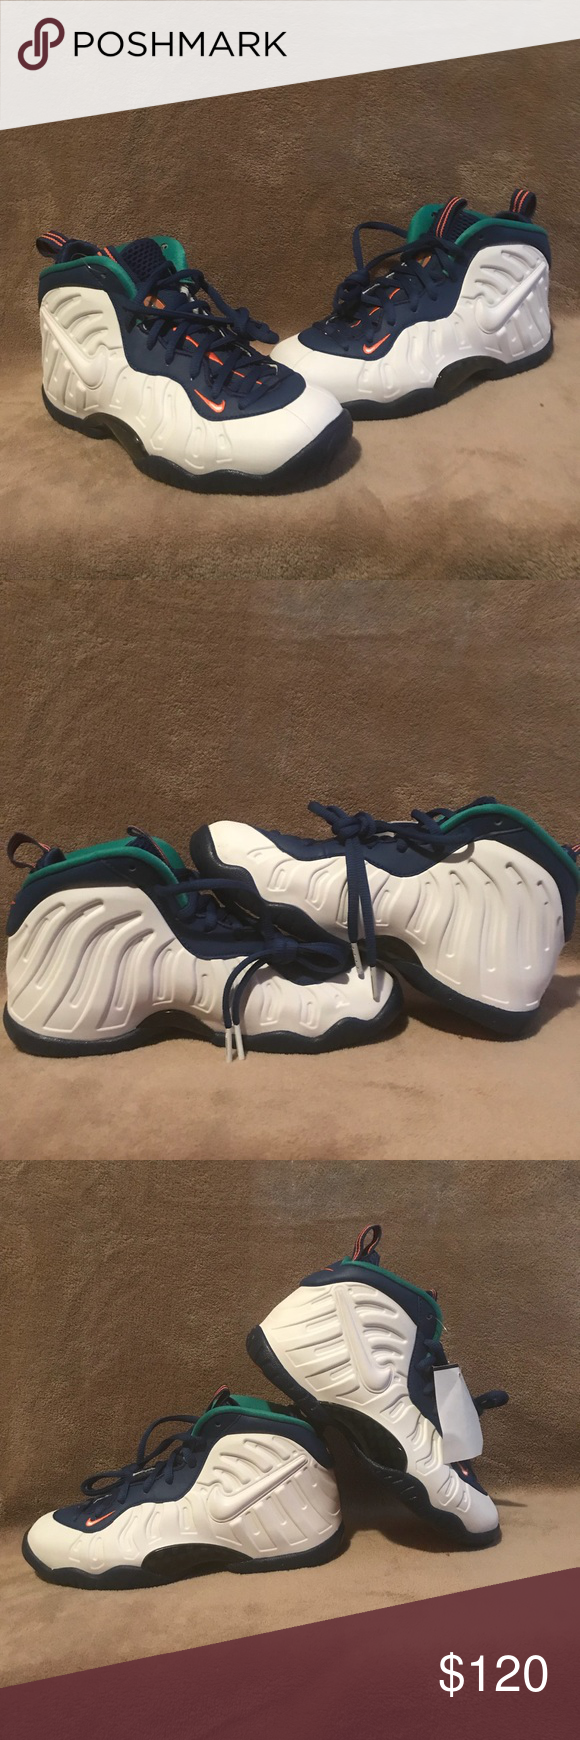 low priced d26b6 0e598 Nike Air foamposite Brand new Nike Air little posite pro GS ...